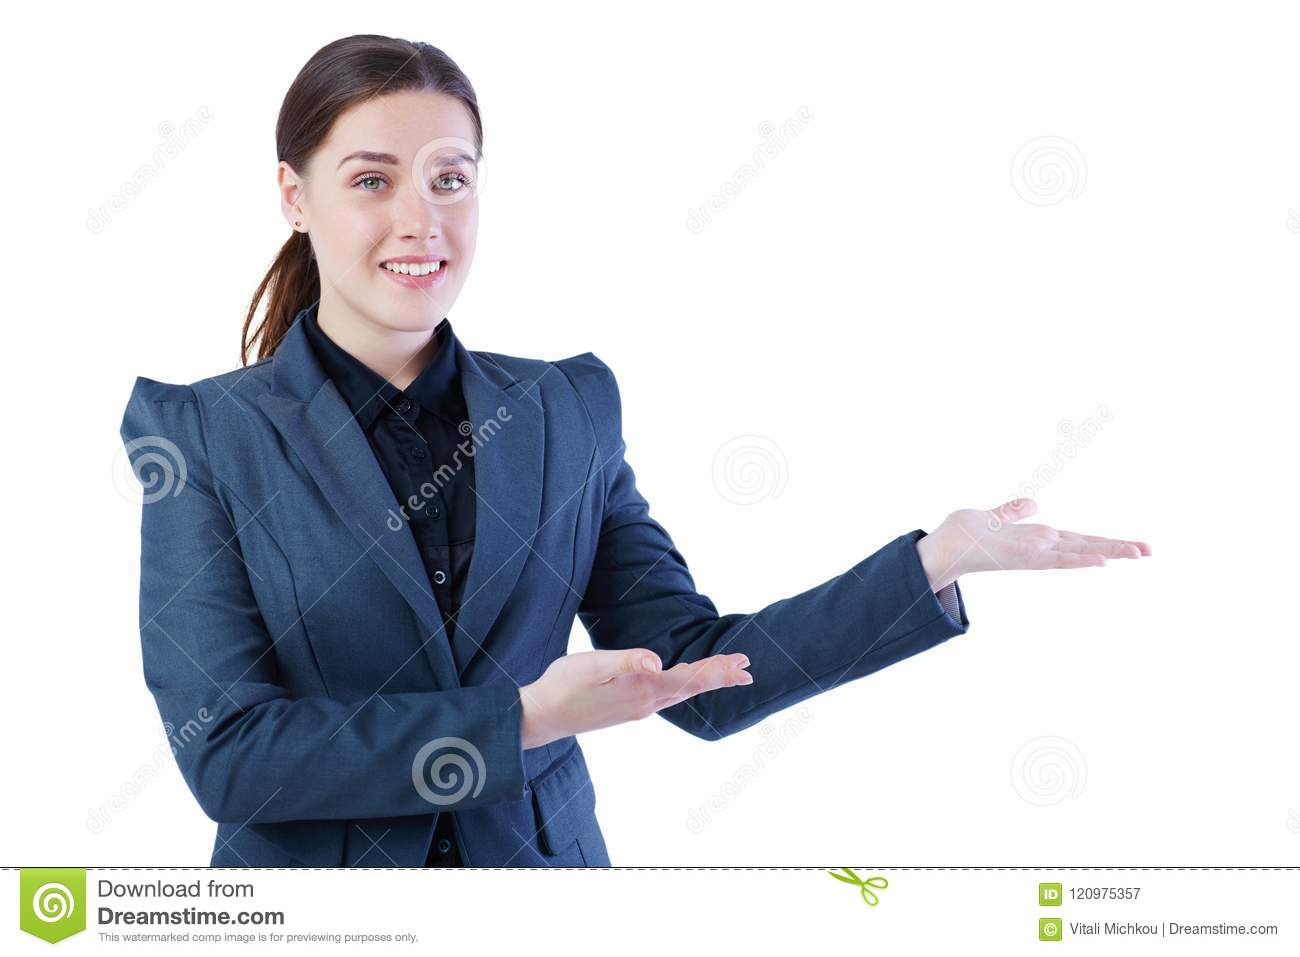 Young Caucasian woman holding her arm out and showing copy space for product. Isolated over white background.